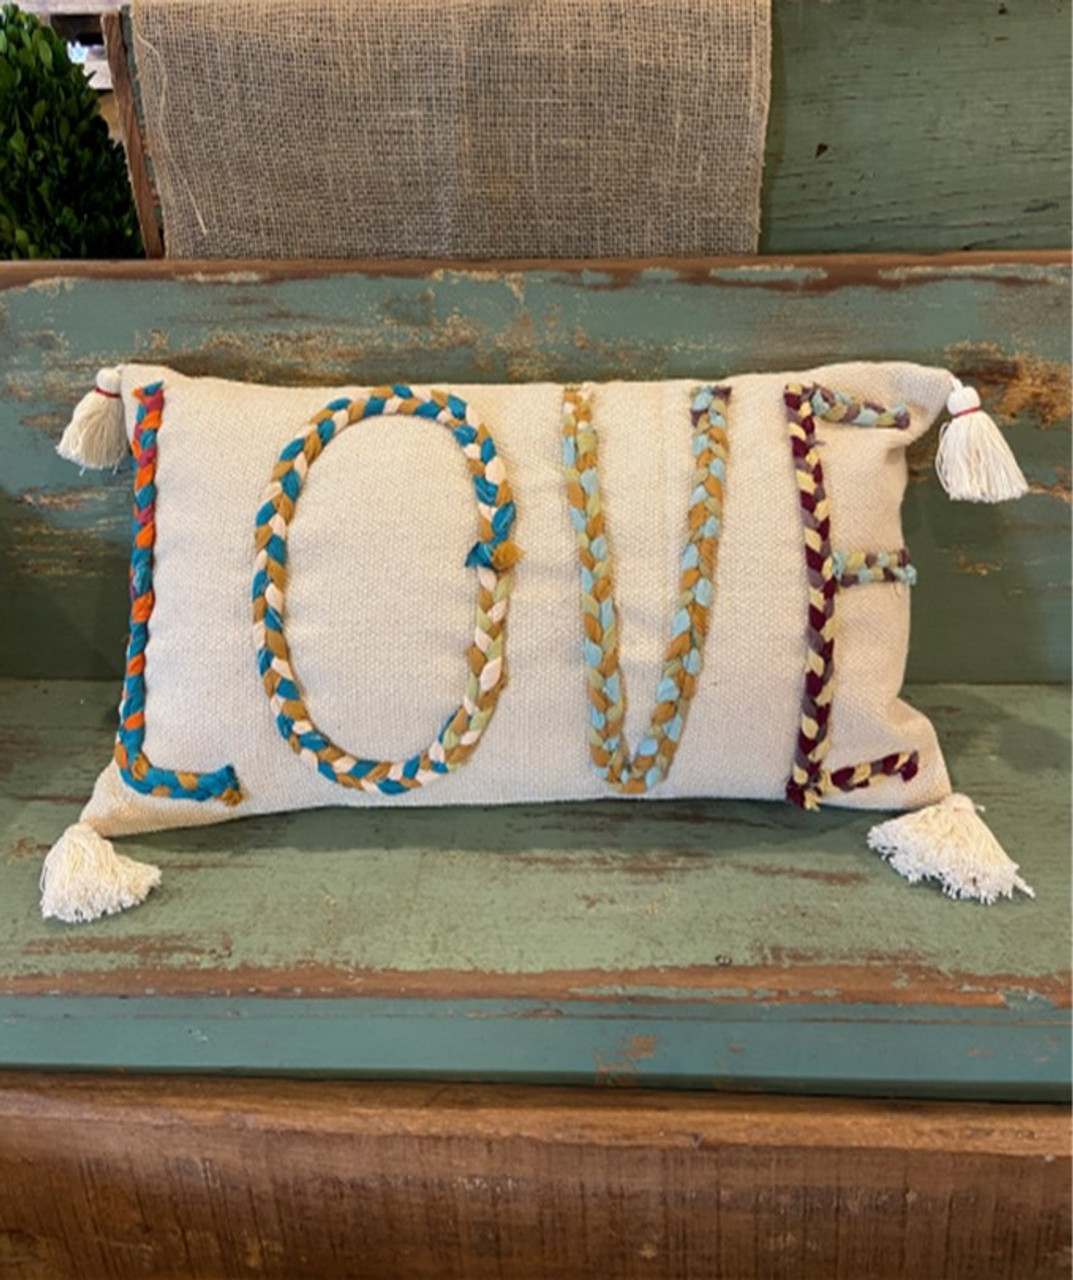 """Multi-color Chindi fabric """"LOVE"""" applique on 24""""L x 14""""H cotton lumbar pillow. Insert included. Each Chindi fabric applique is unique; this one features soft teal blues."""